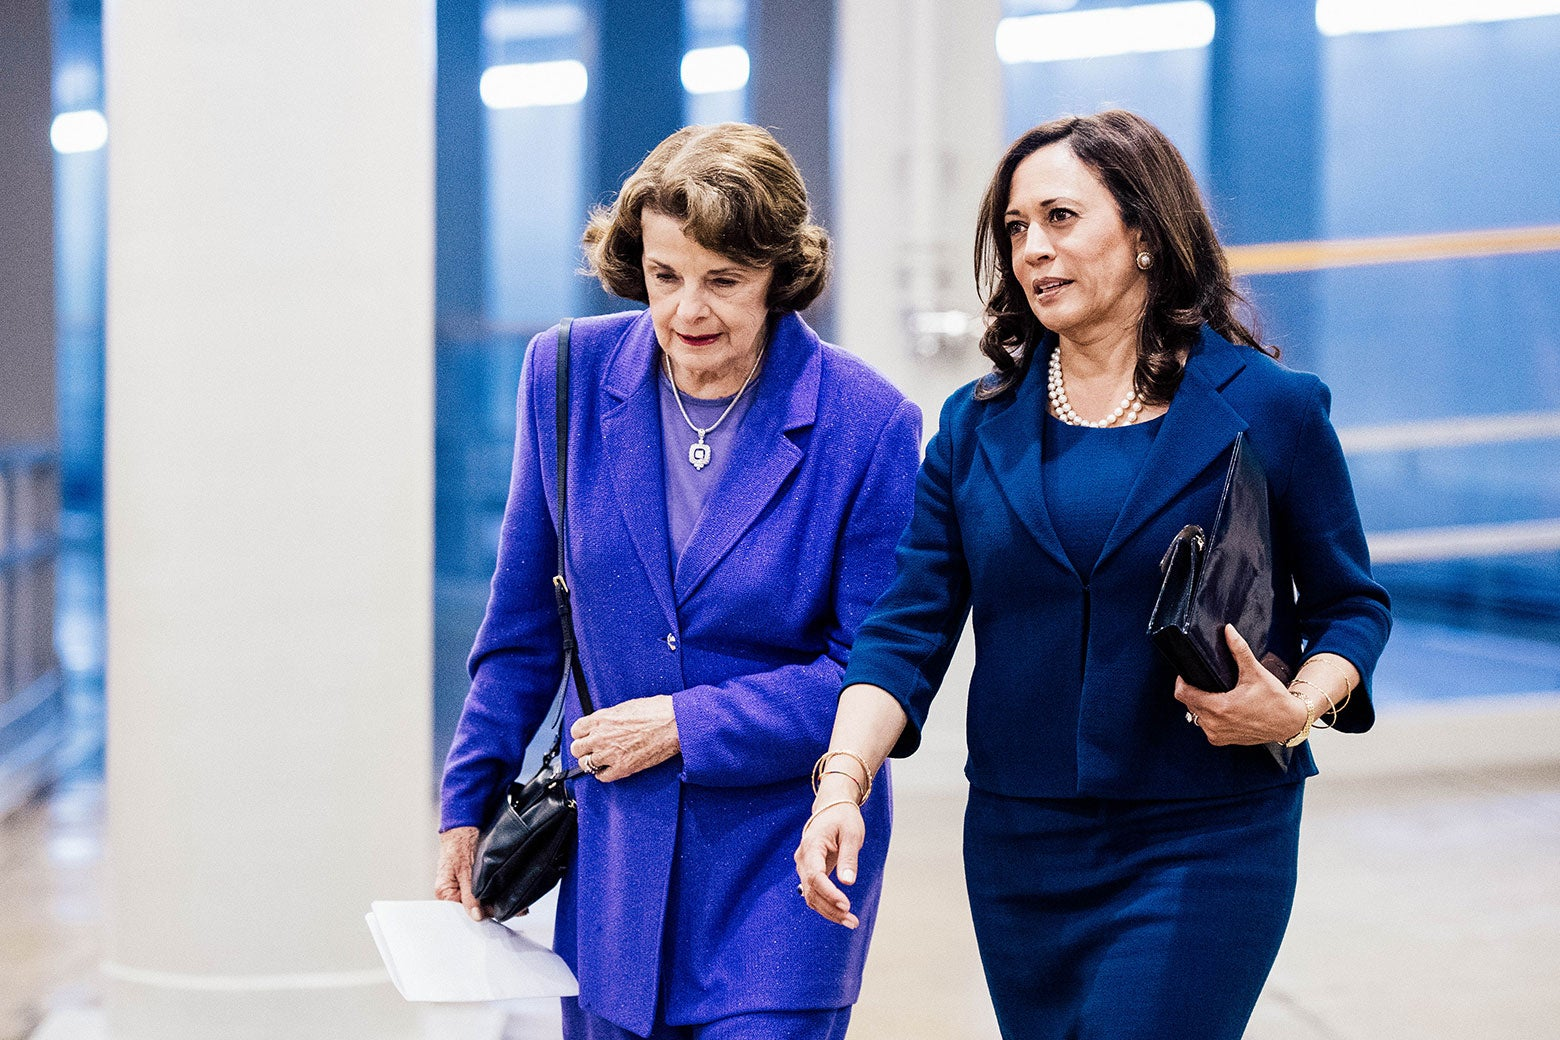 Dianne Feinstein and Kamala Harris walk side by side as they arrive at the Capitol.